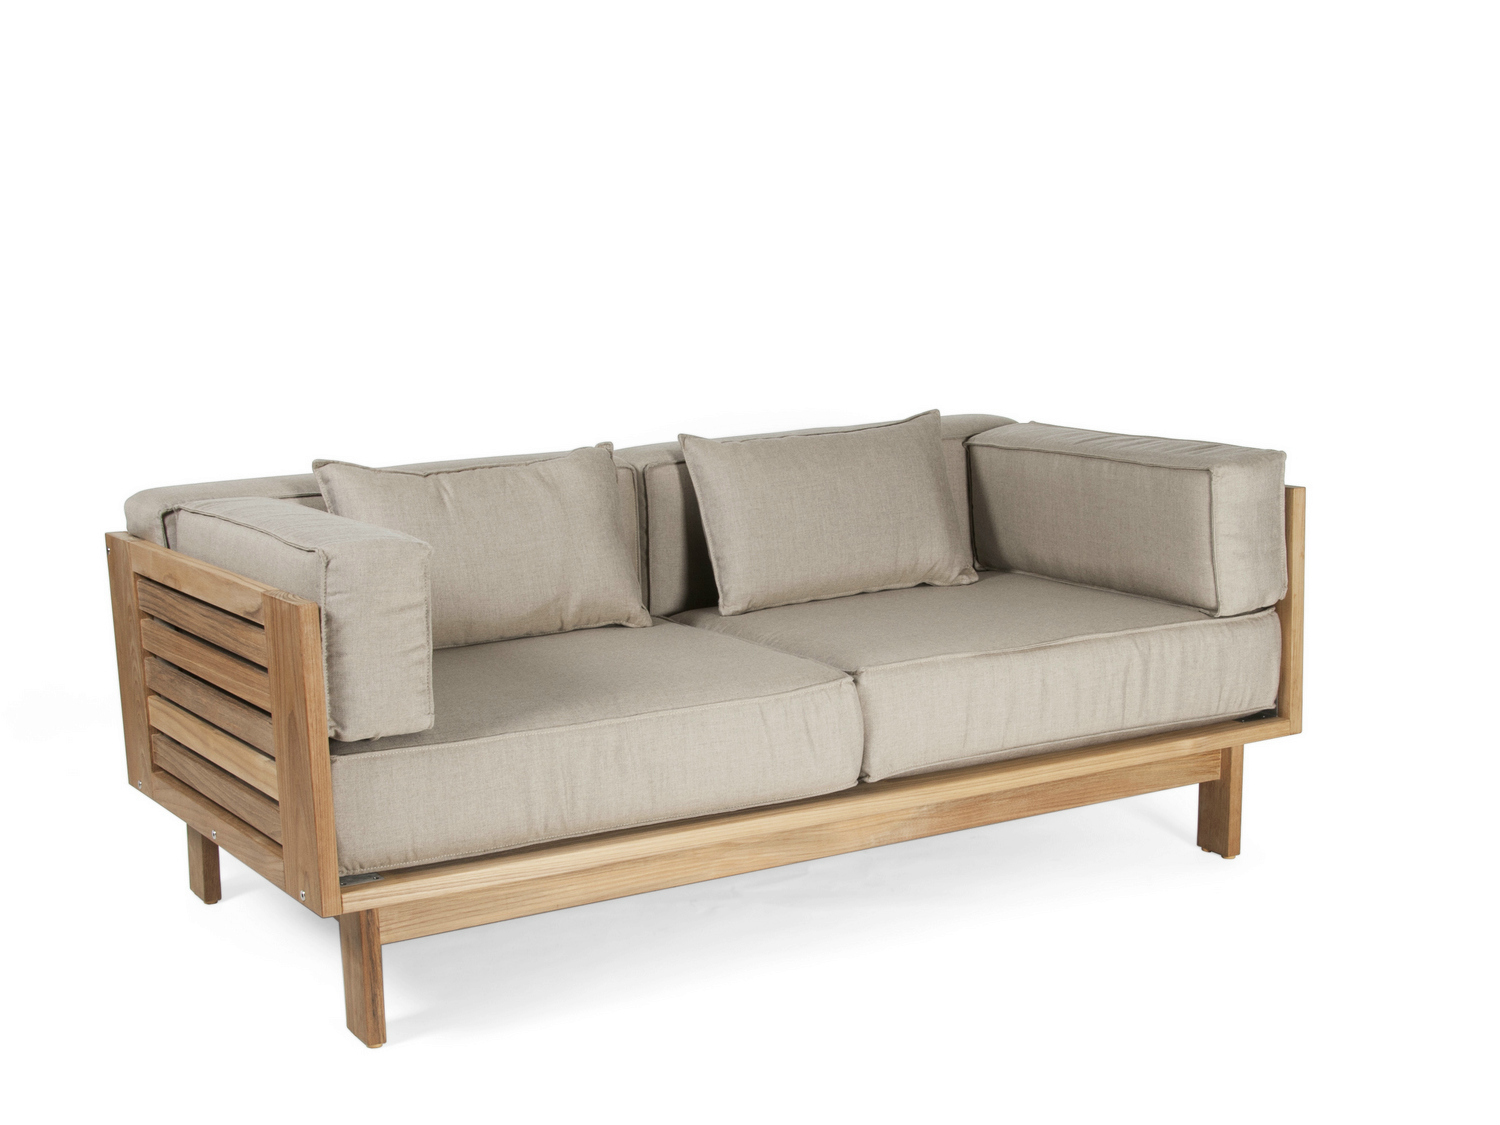 falsterbo 2 seater garden sofa by skargaarden design carl. Black Bedroom Furniture Sets. Home Design Ideas